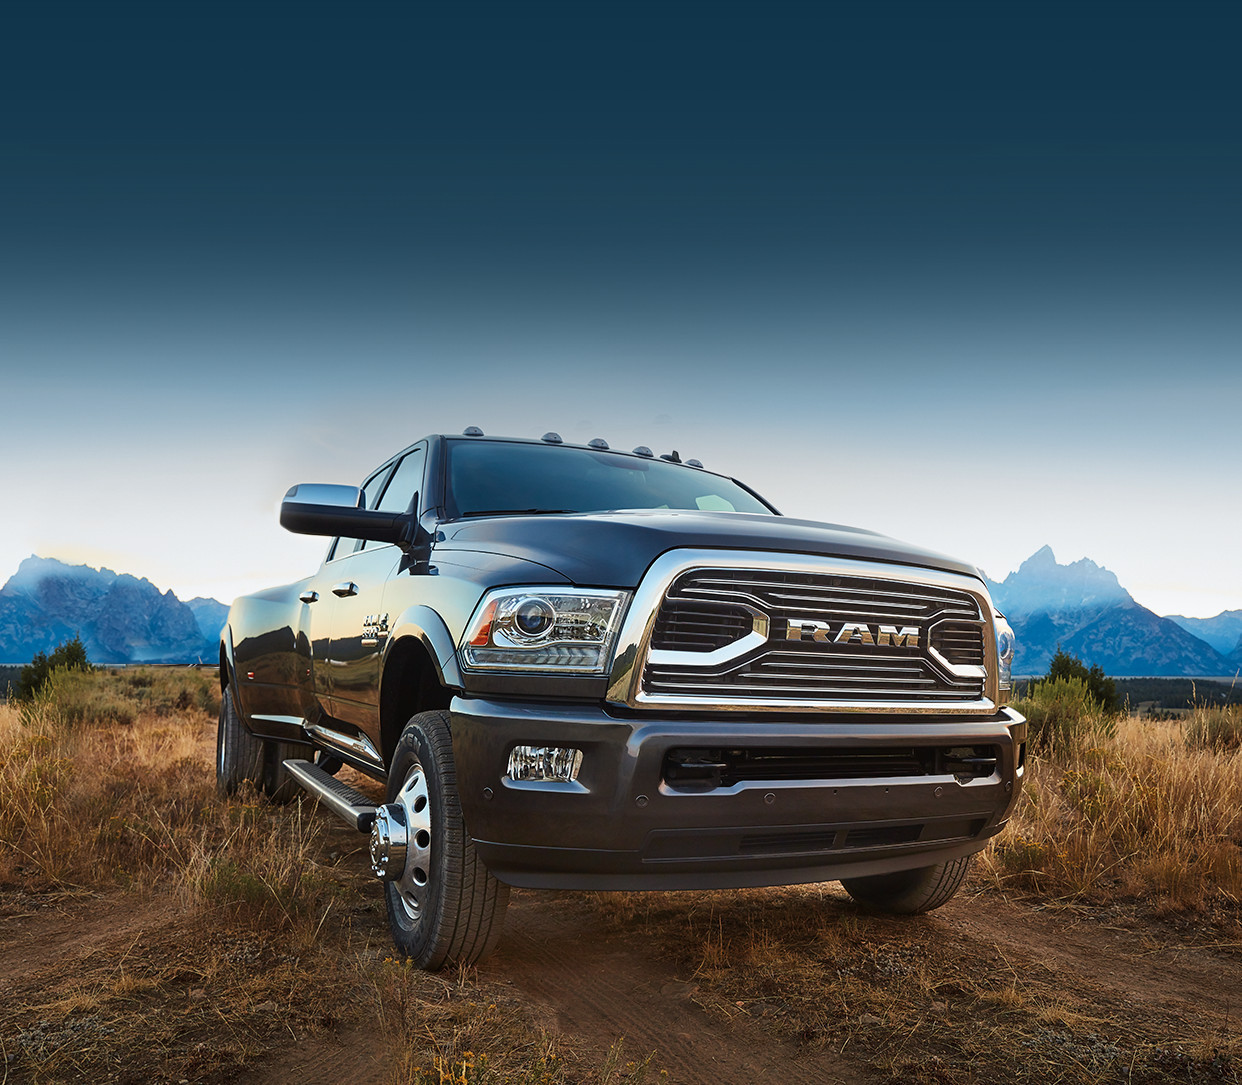 2018 Ram 3500 Truck Trucks Canada 2014 Dodge 1500 Longhorn Lifted Close Up Of Front Grille